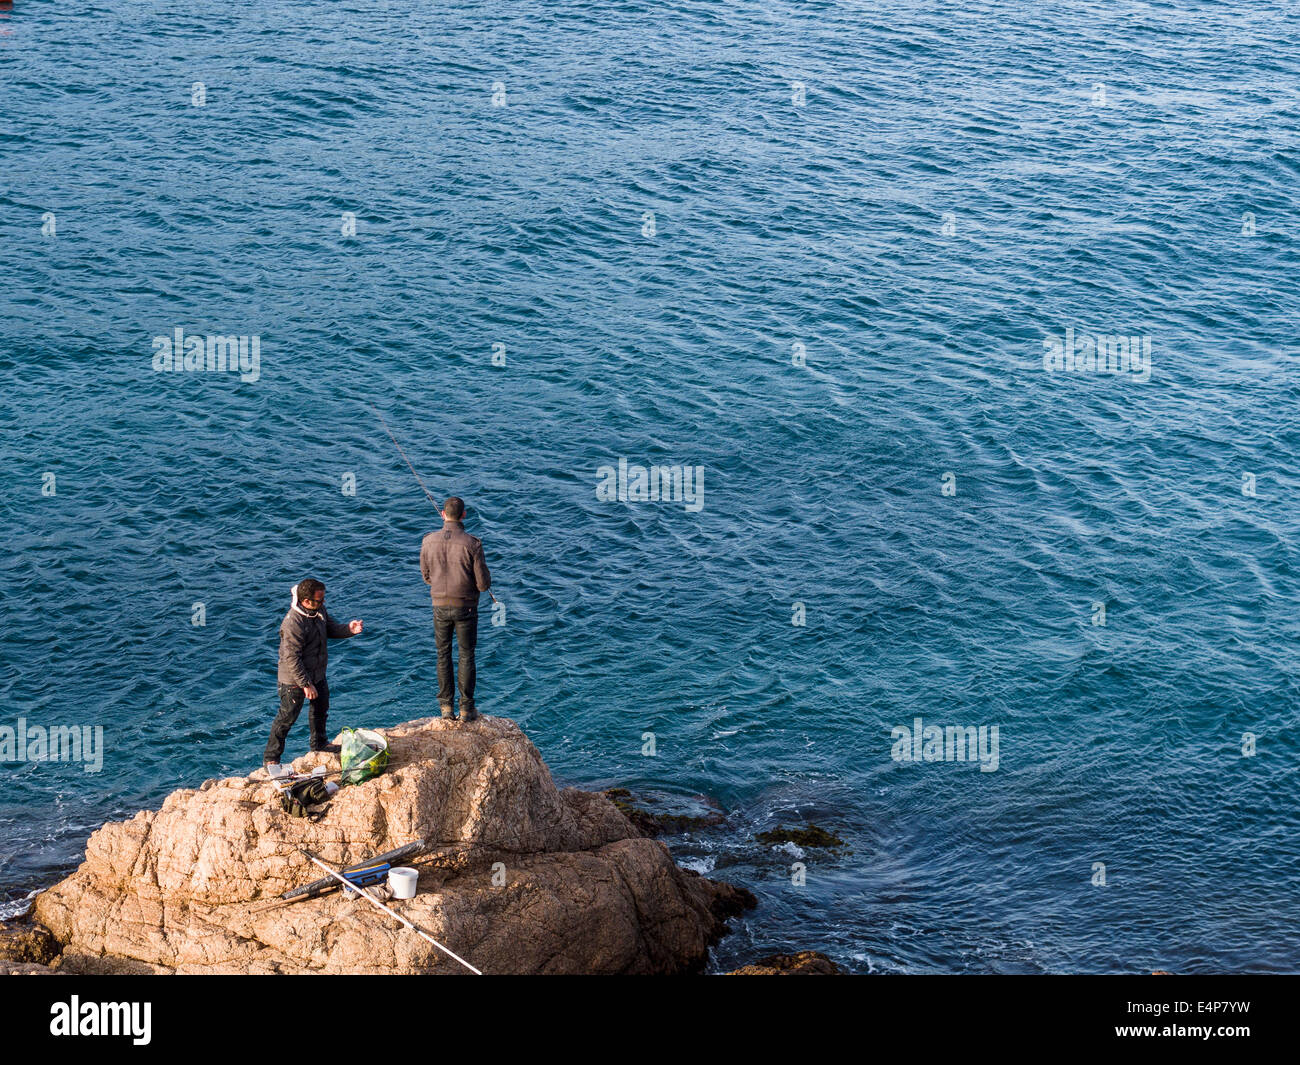 Shore Fishing off the rocks. Two men fish from a rock just below the castle near the shore at Tossa de Mar. - Stock Image